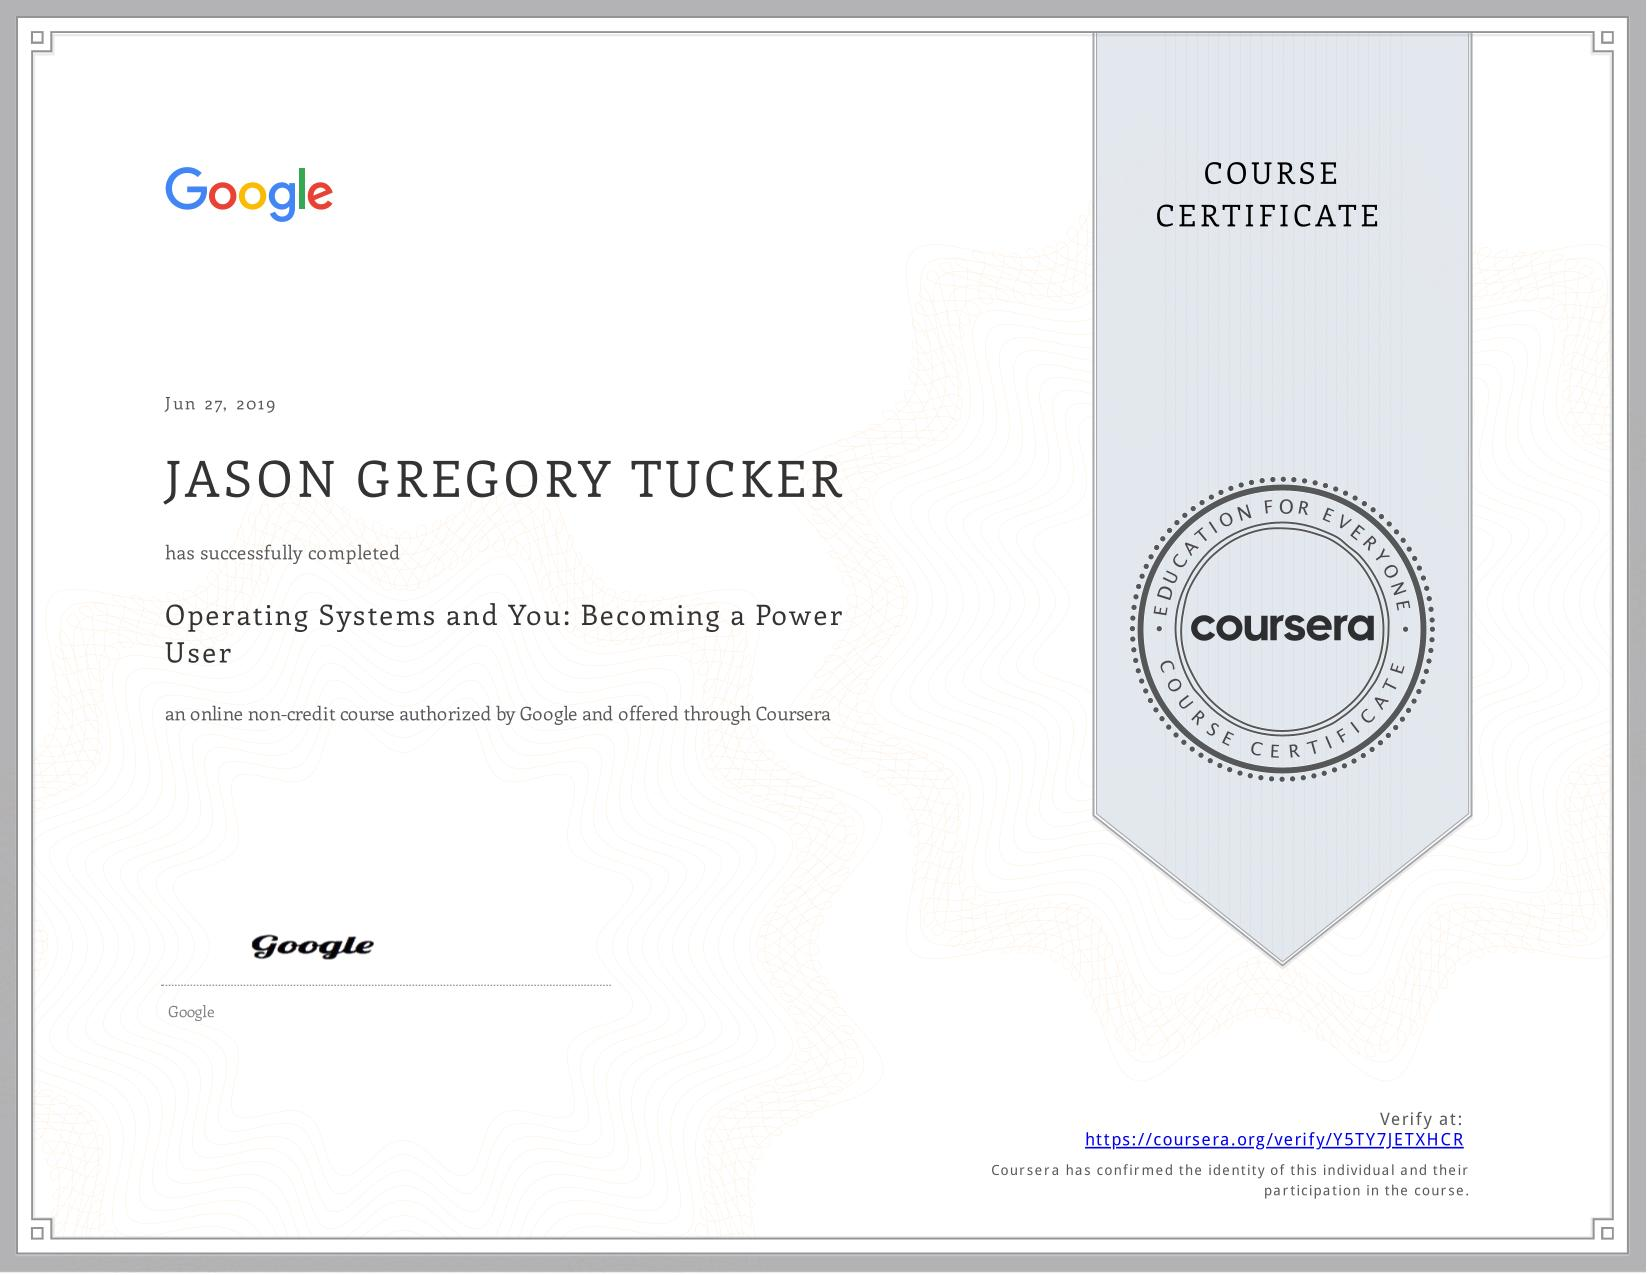 View certificate for JASON GREGORY  TUCKER, Operating Systems and You: Becoming a Power User, an online non-credit course authorized by Google and offered through Coursera